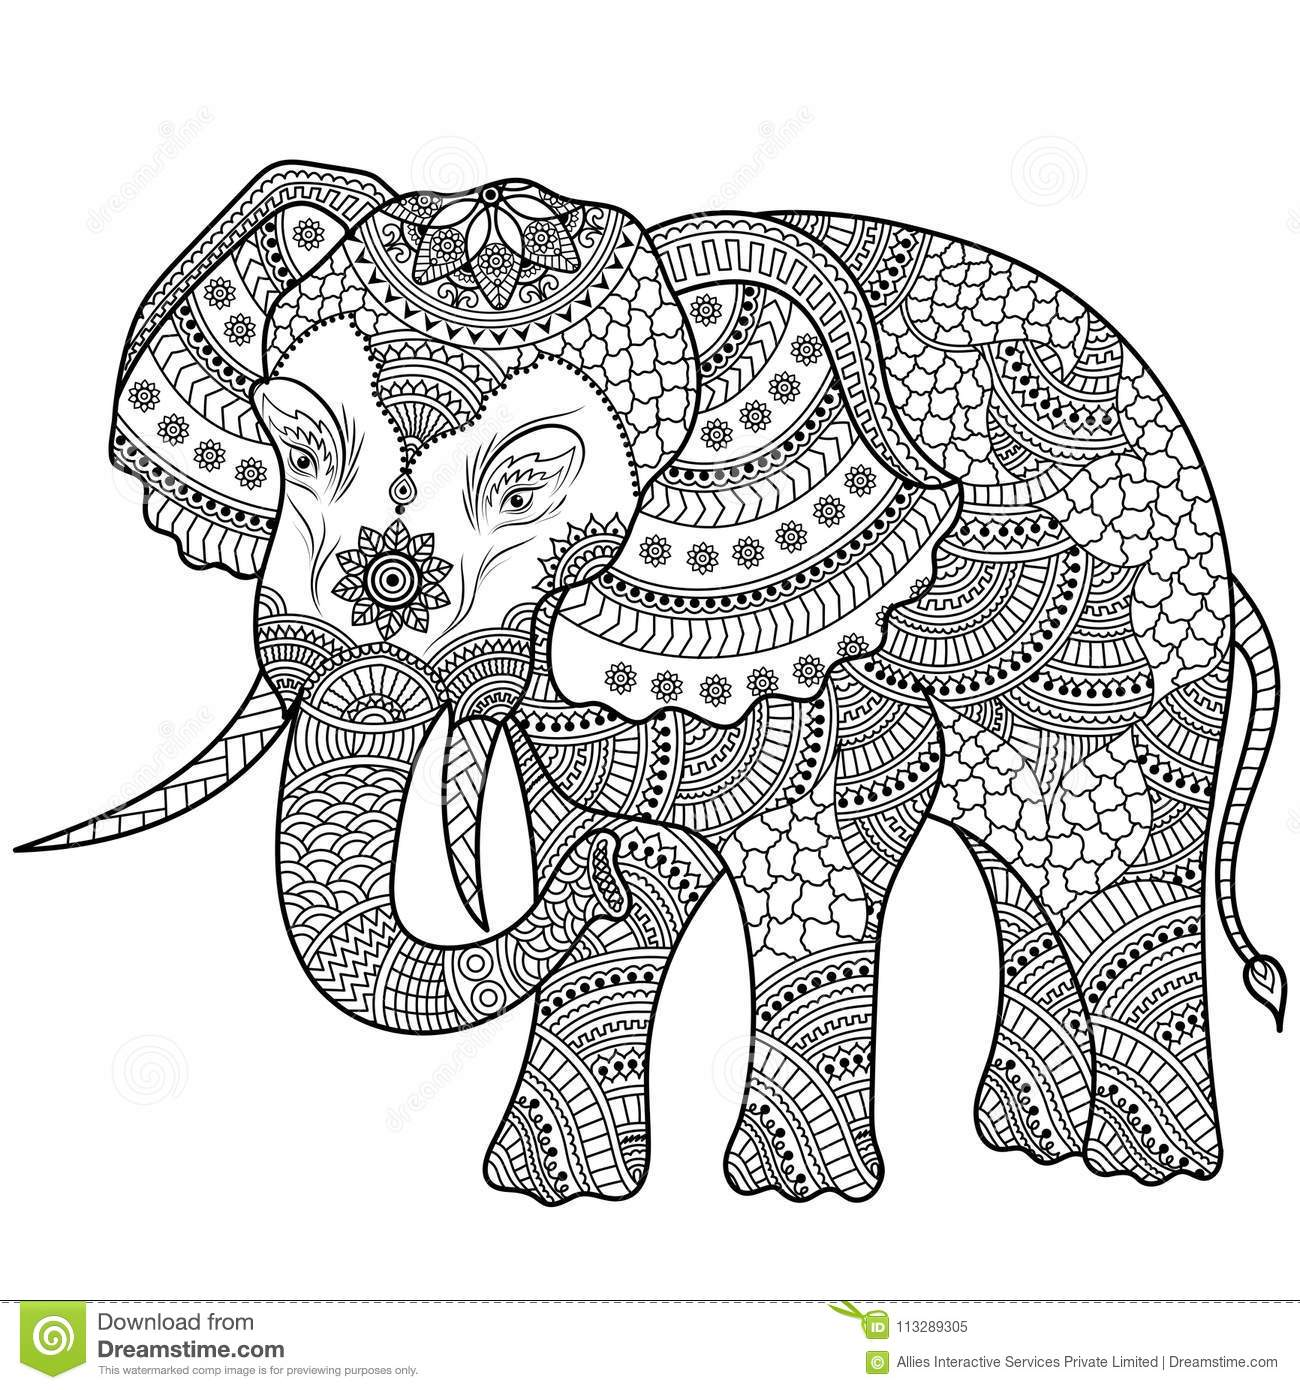 Elephant Illustration, Coloring Doodle. Colouring Book. Stock ...